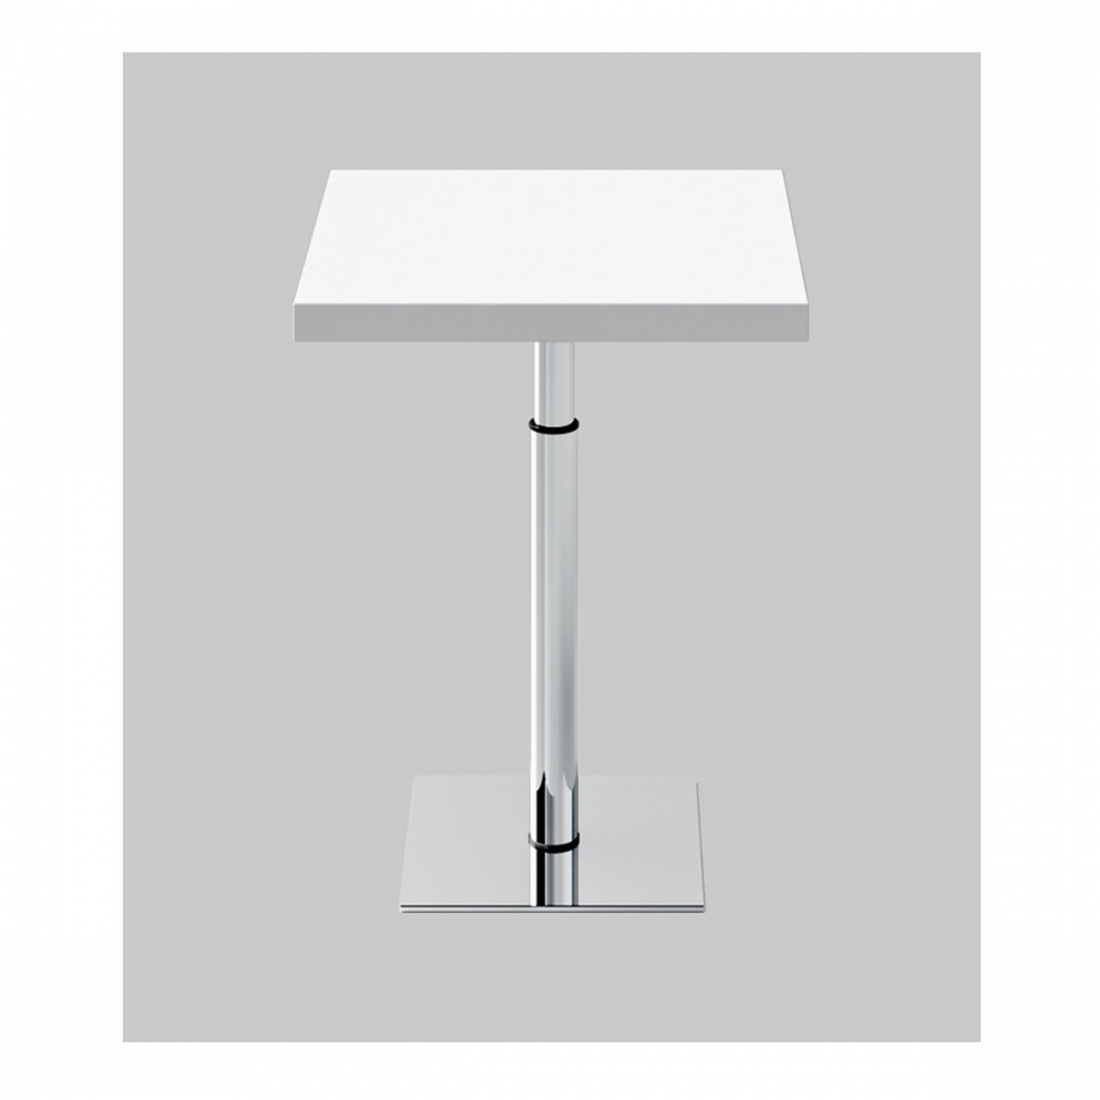 Orfeo Orfeo Relevable Table Relevable H4775cm Chromé Table H4775cm 7gyfIbv6Y